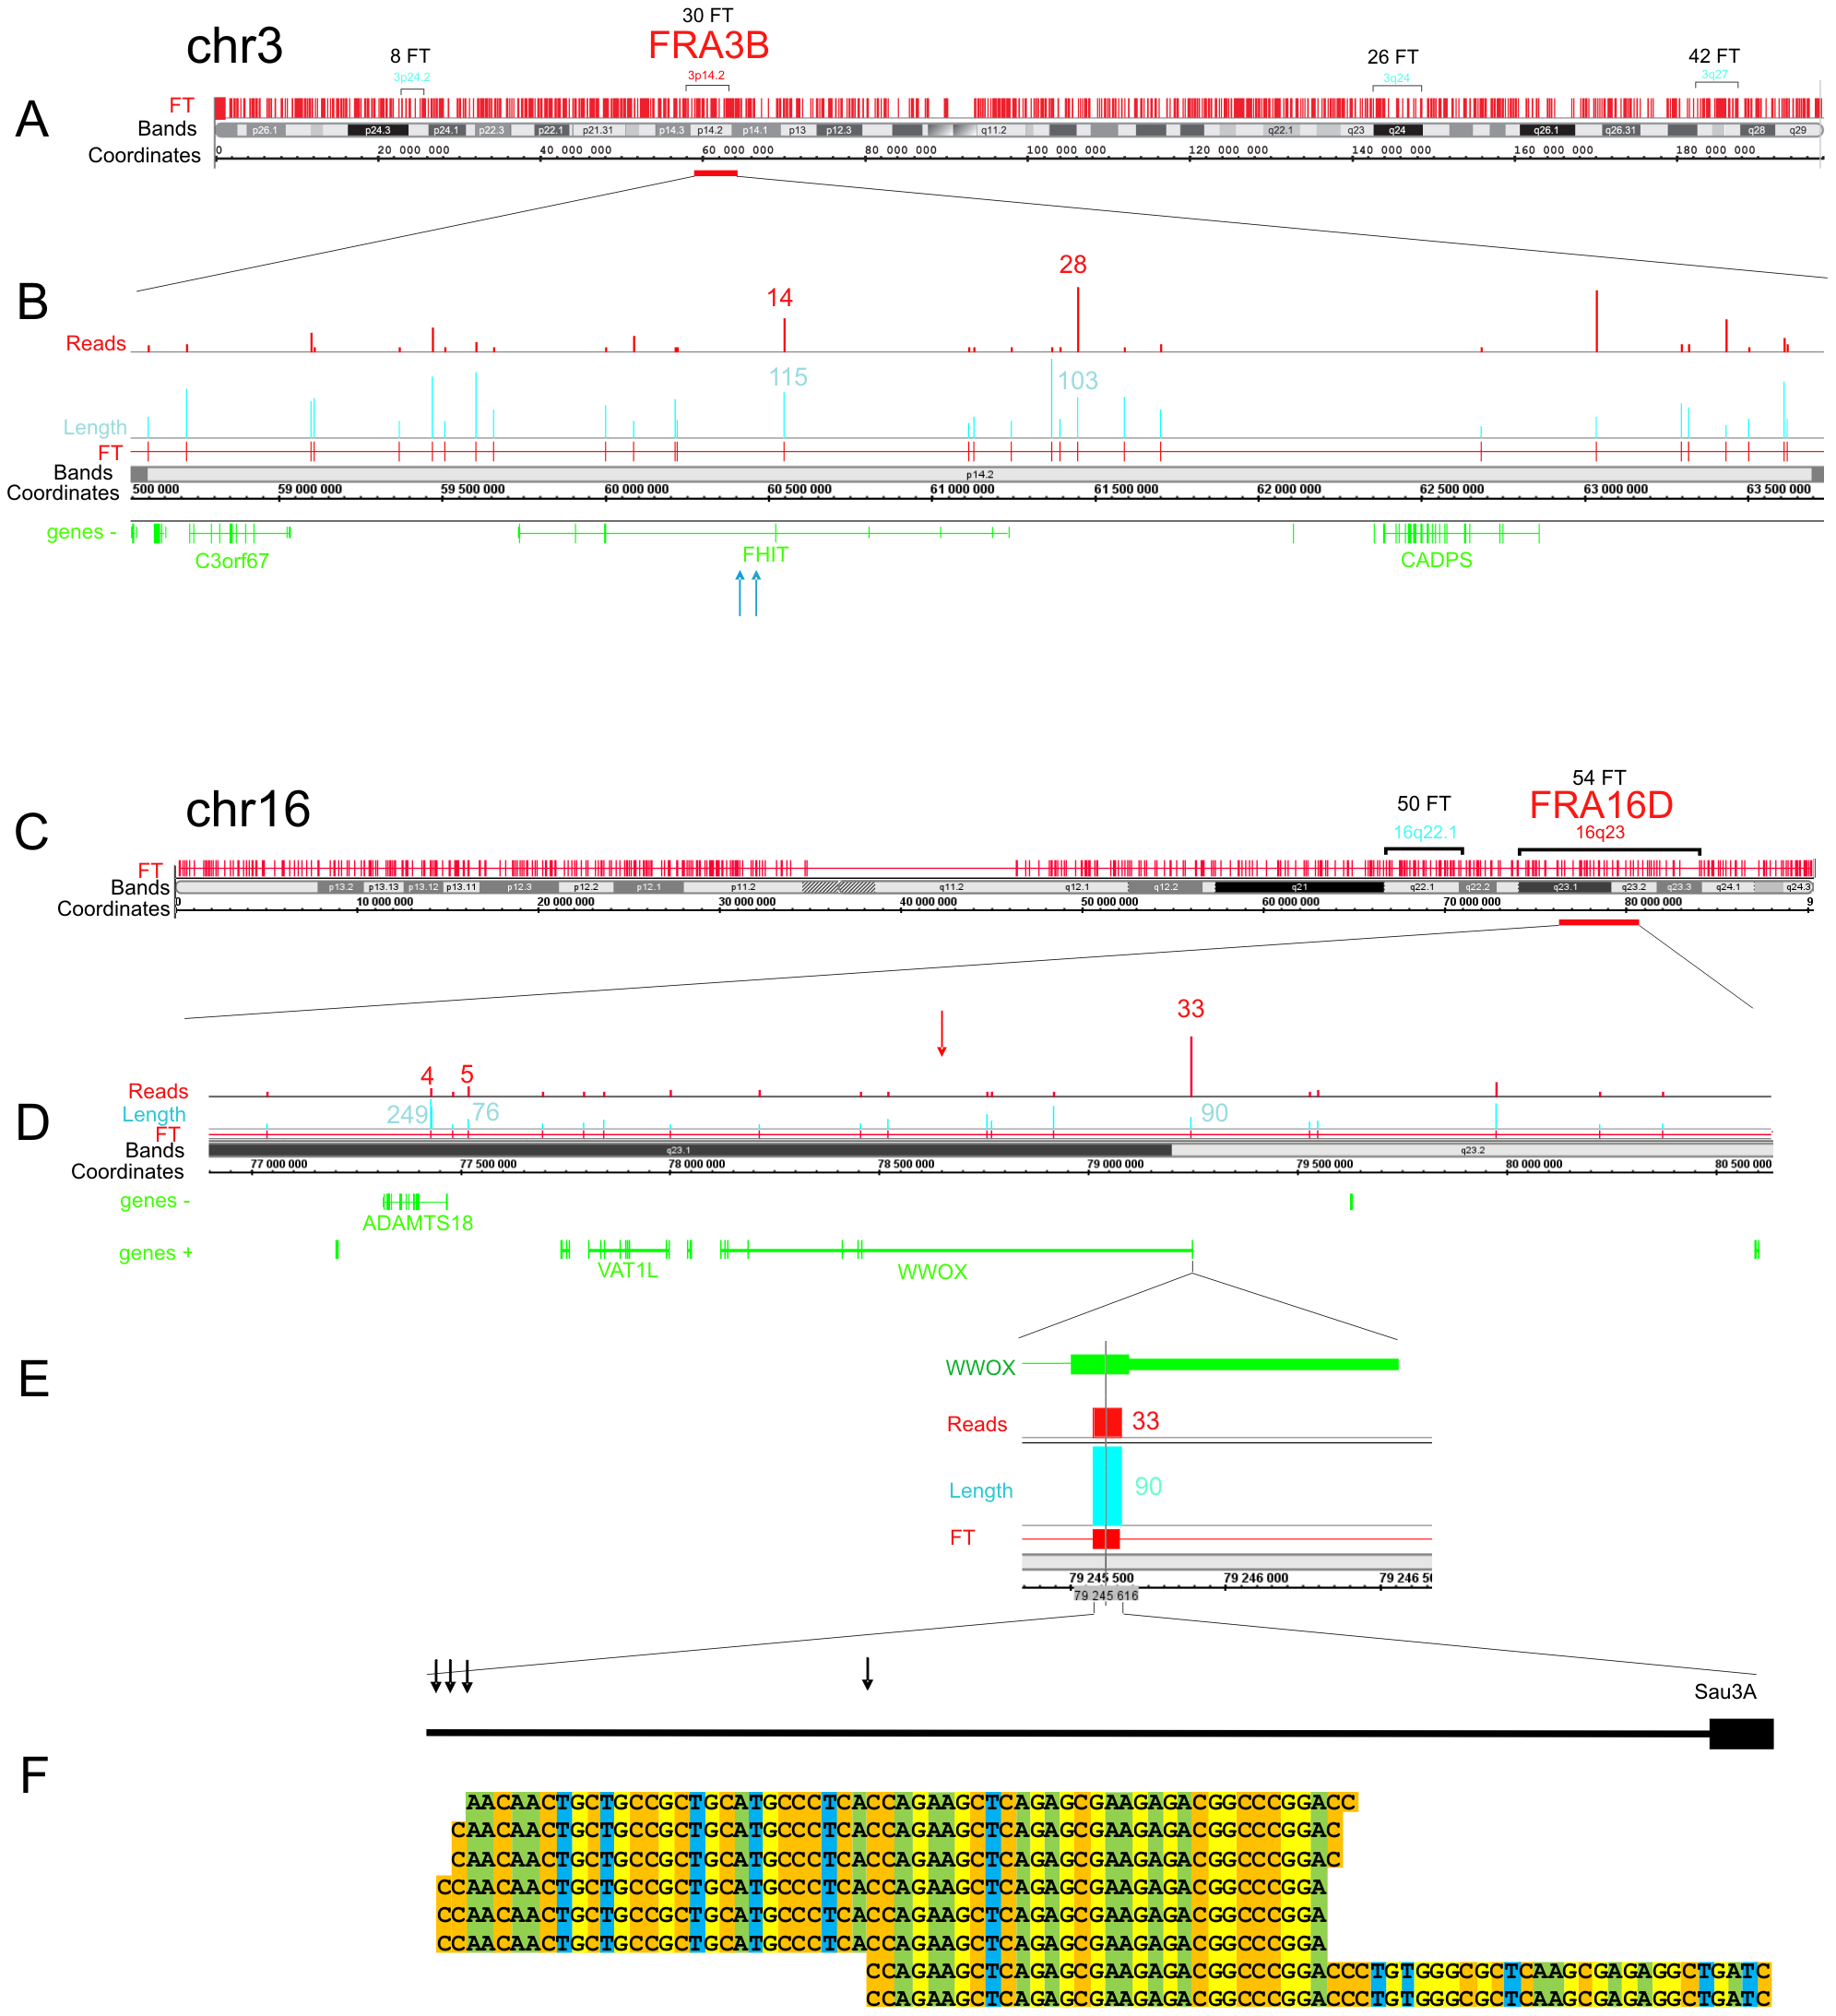 Overviews of chromosomes 3 and 16, which contain the FRA3B and FRA16D regions.